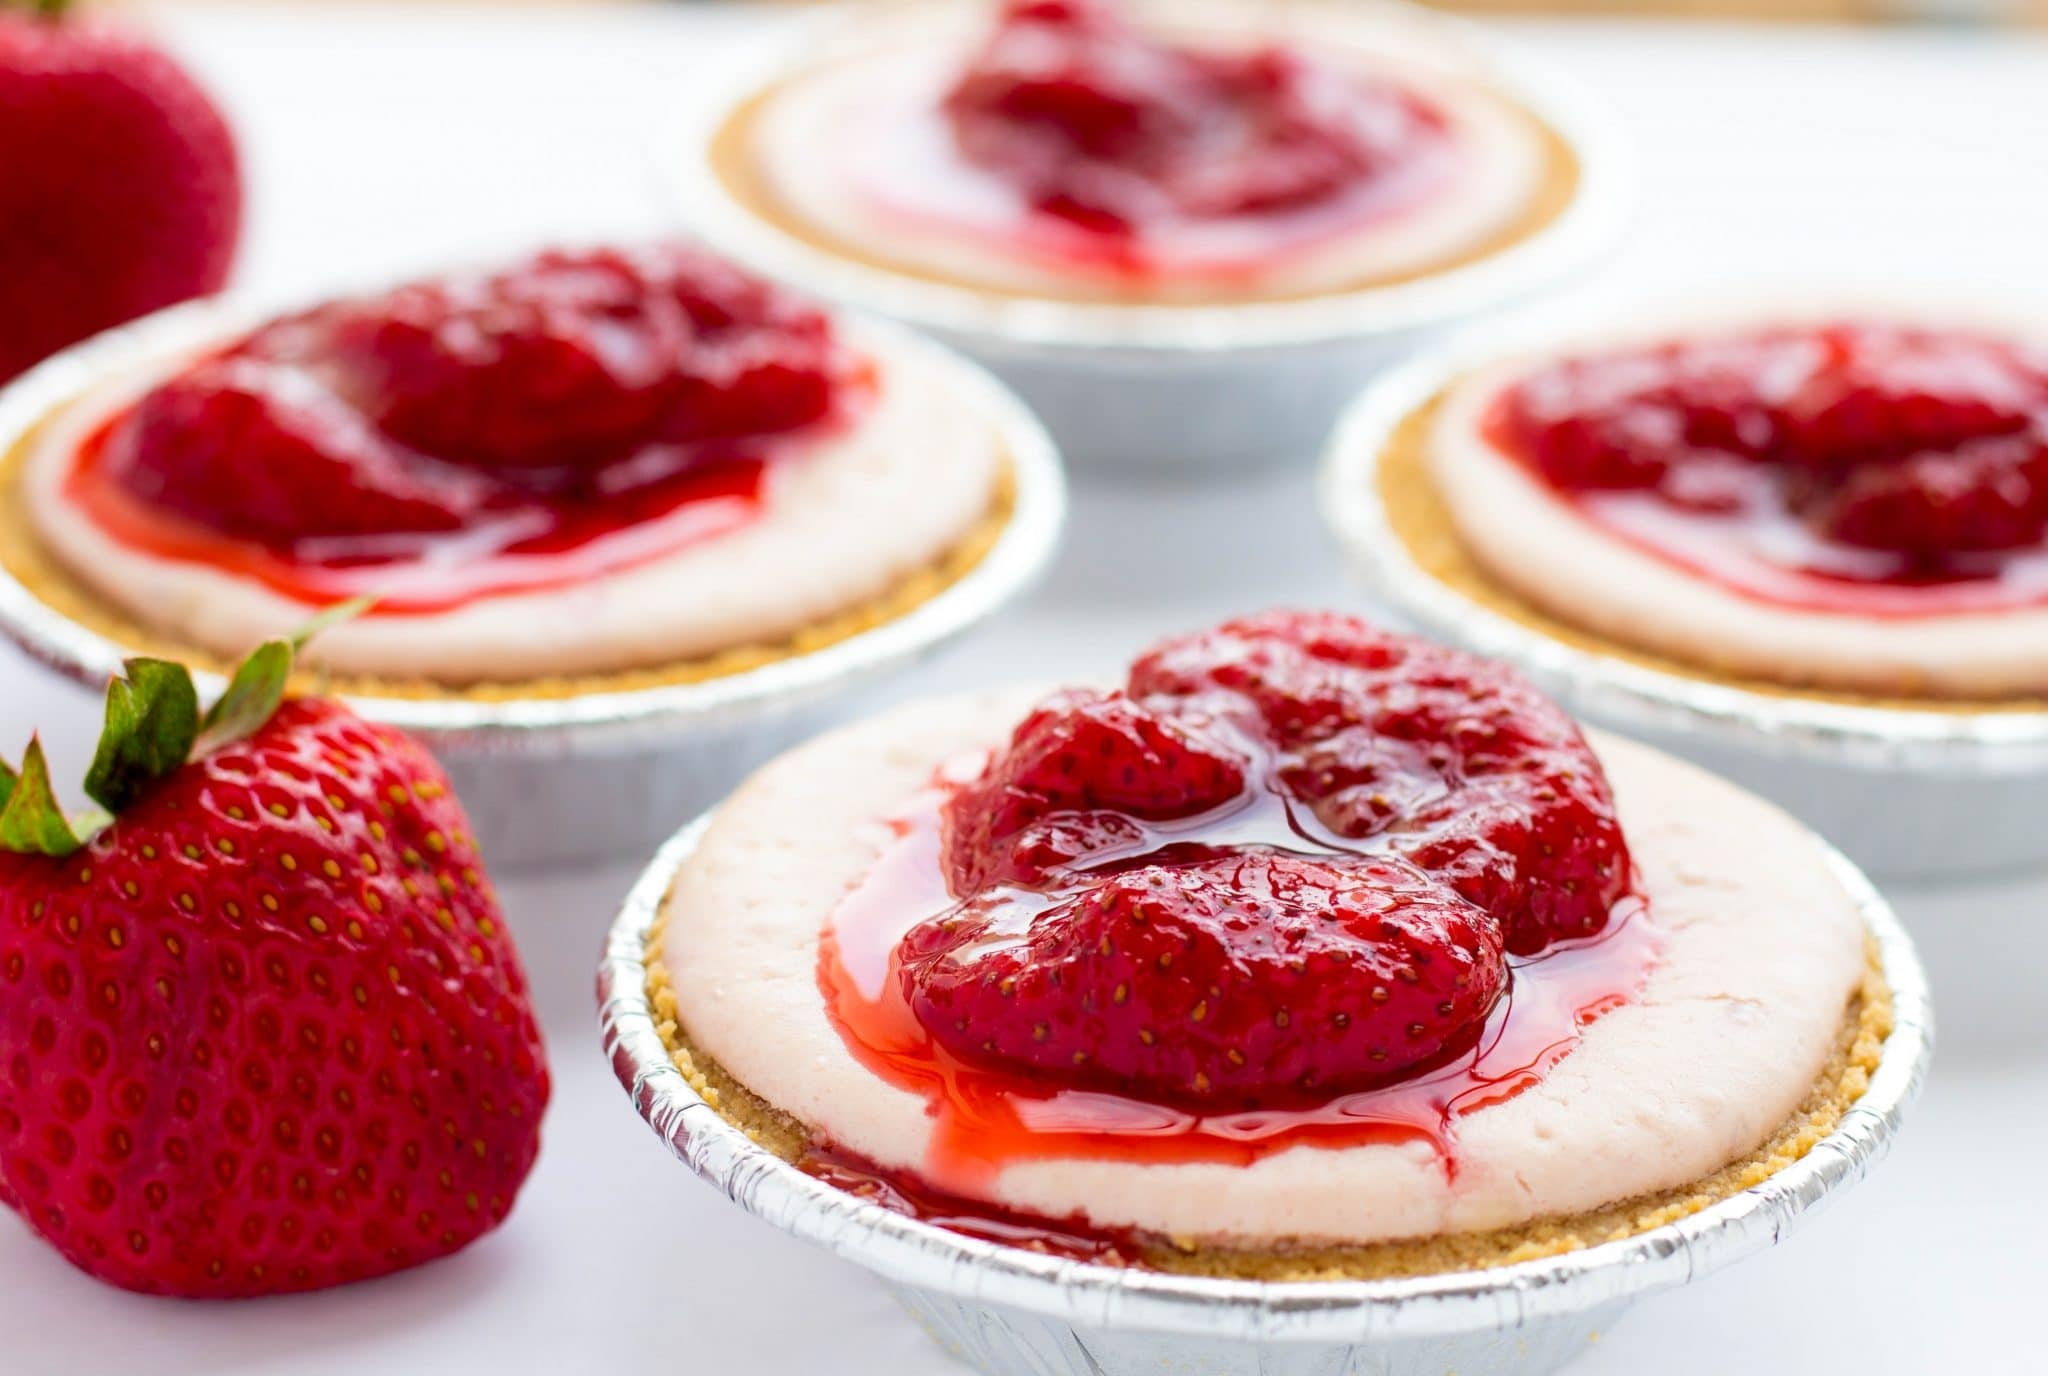 The Best Mini Strawberry Cheesecakes with Strawberry Sauce